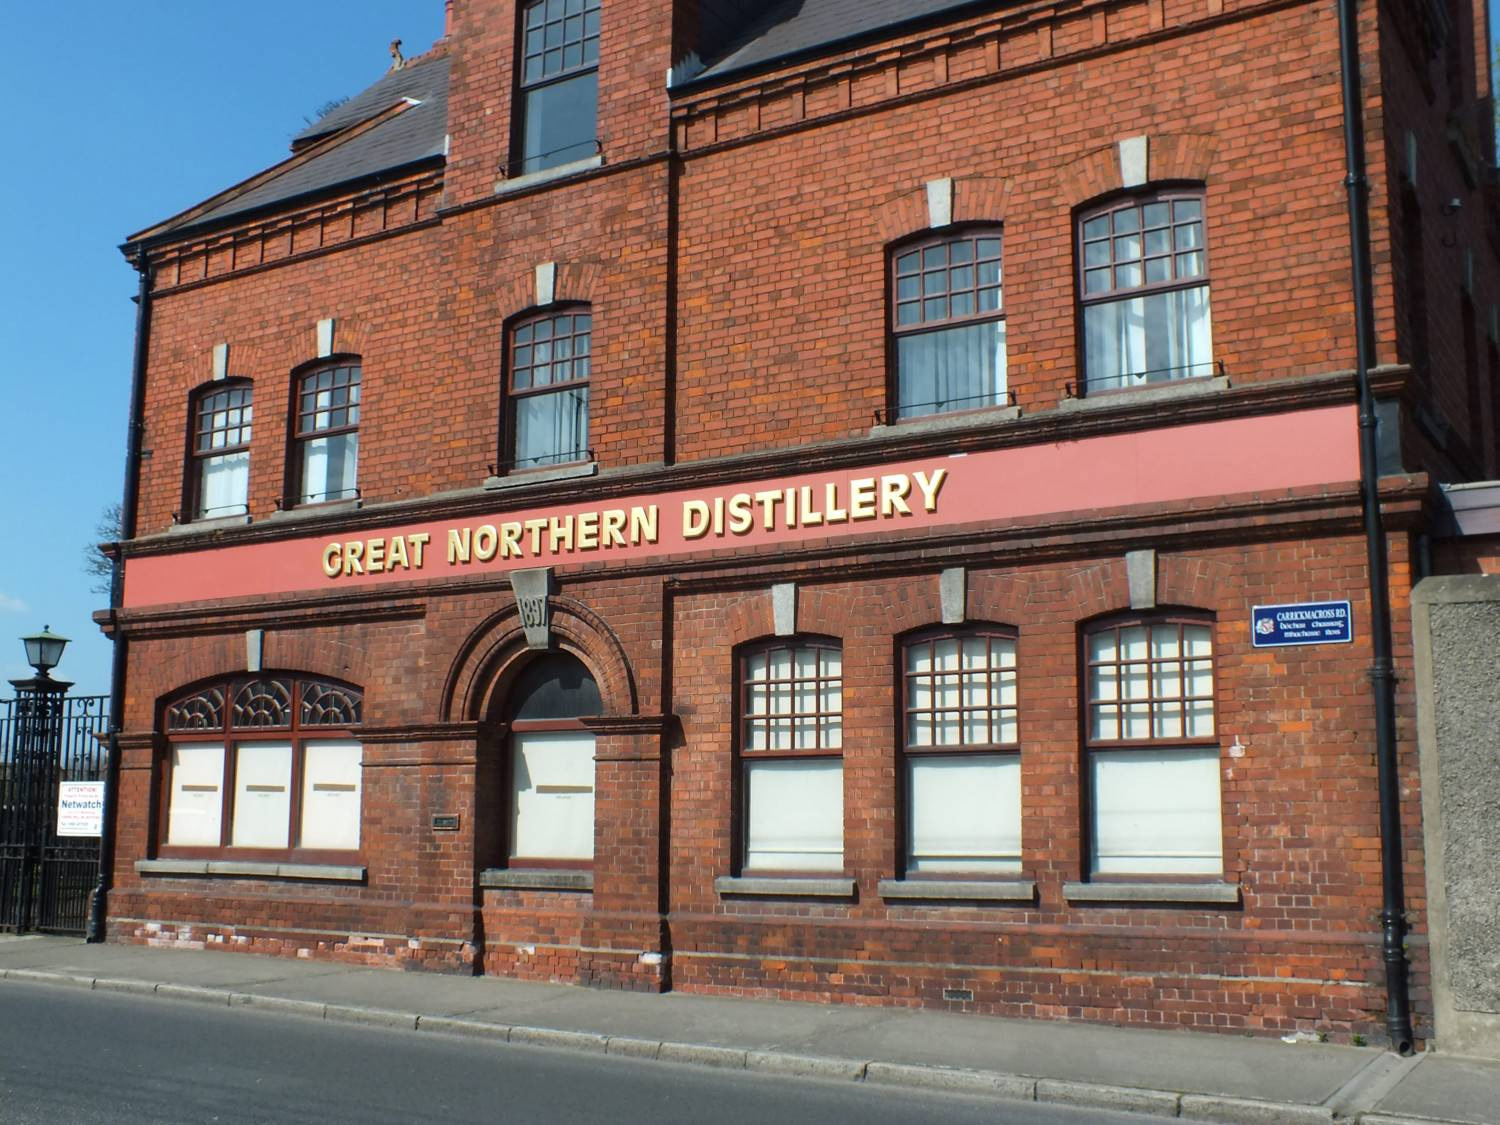 greatnortherndistillerydundalk